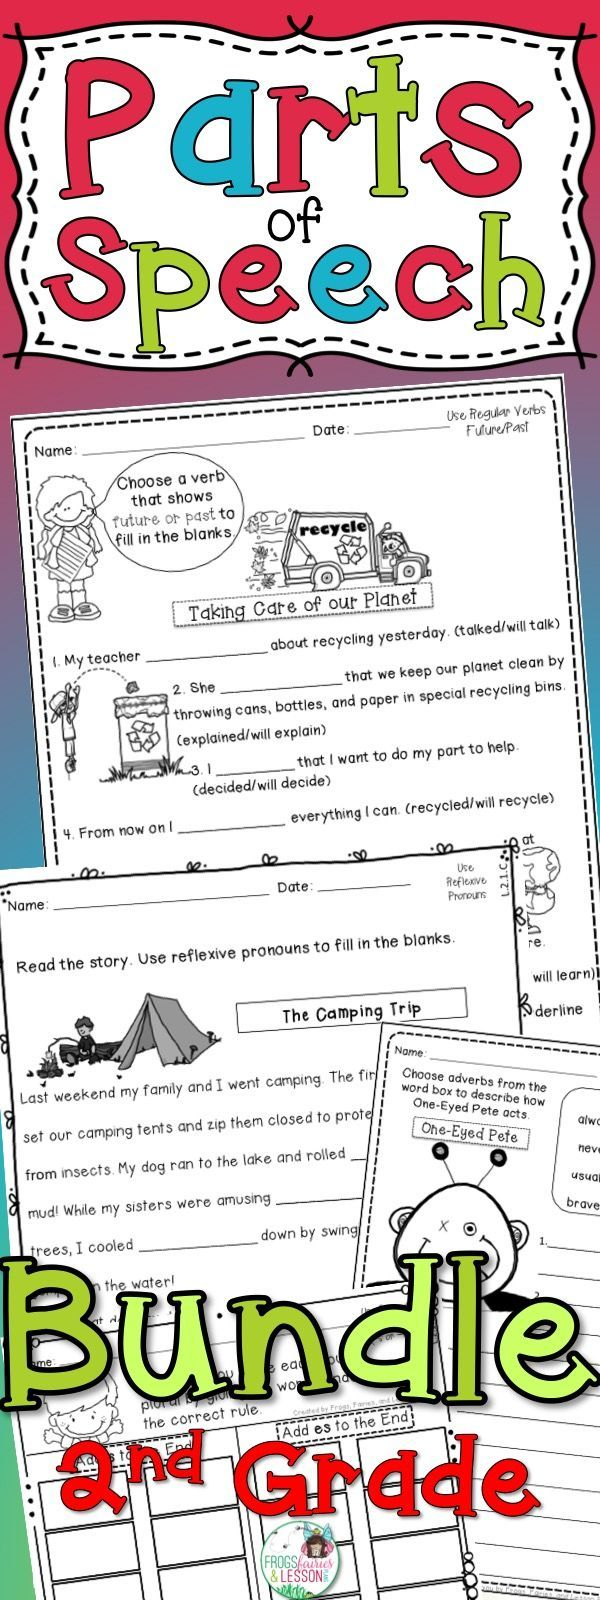 Second Grade Parts of Speech Worksheets, Activities, Literacy Centers, and Games! Save time and money with this Bundle. It includes the common core standards that your 2nd grader needs to know about Nouns, Verbs, Adjectives, Adverbs, and Pronouns! Click to see the product preview.